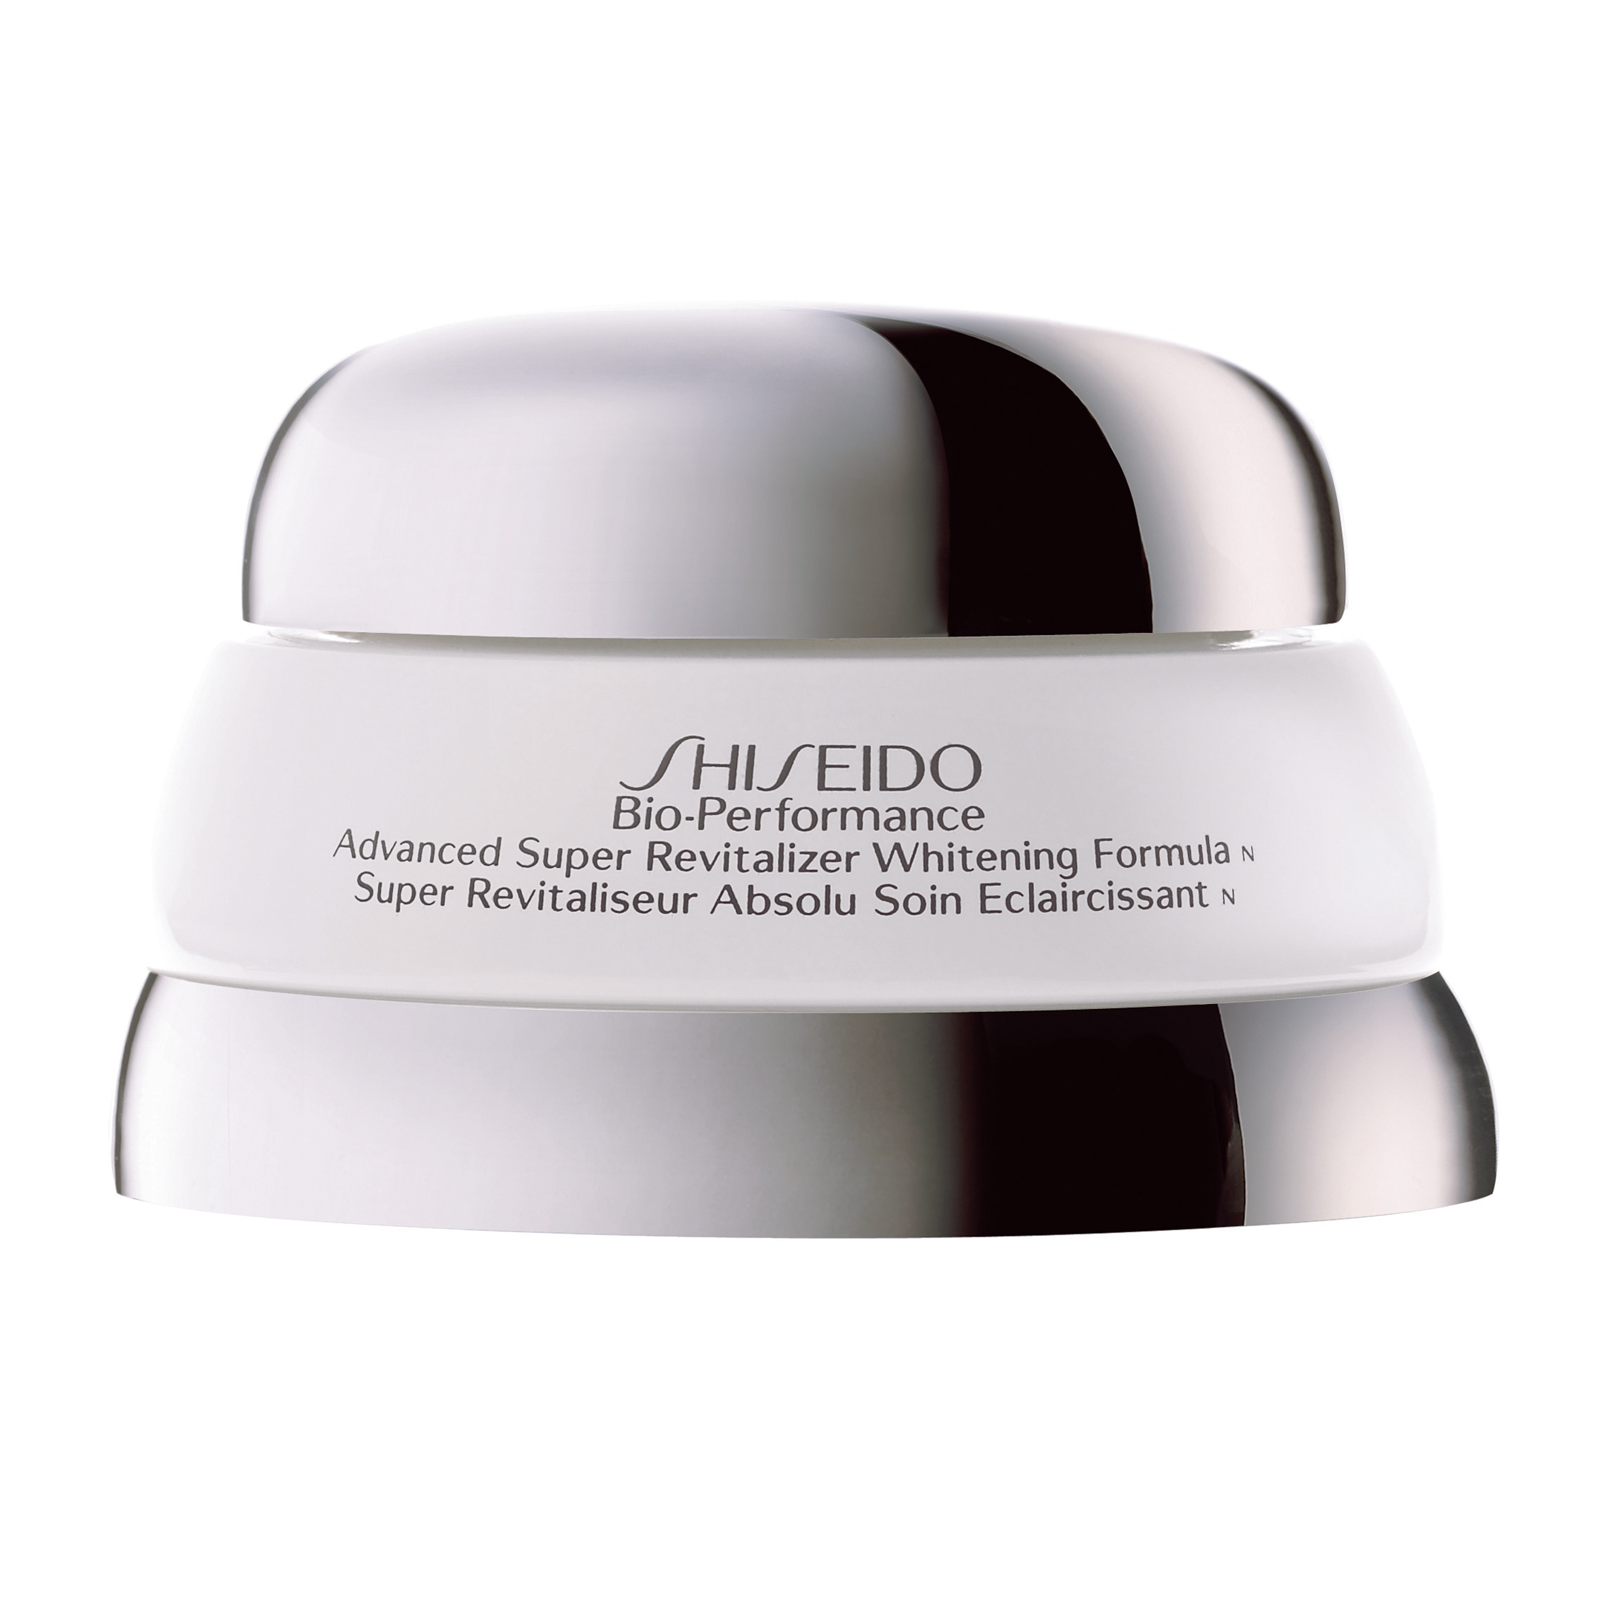 SHISEIDO BIO PERFORMANS SUPER REVITALIZING CREAM